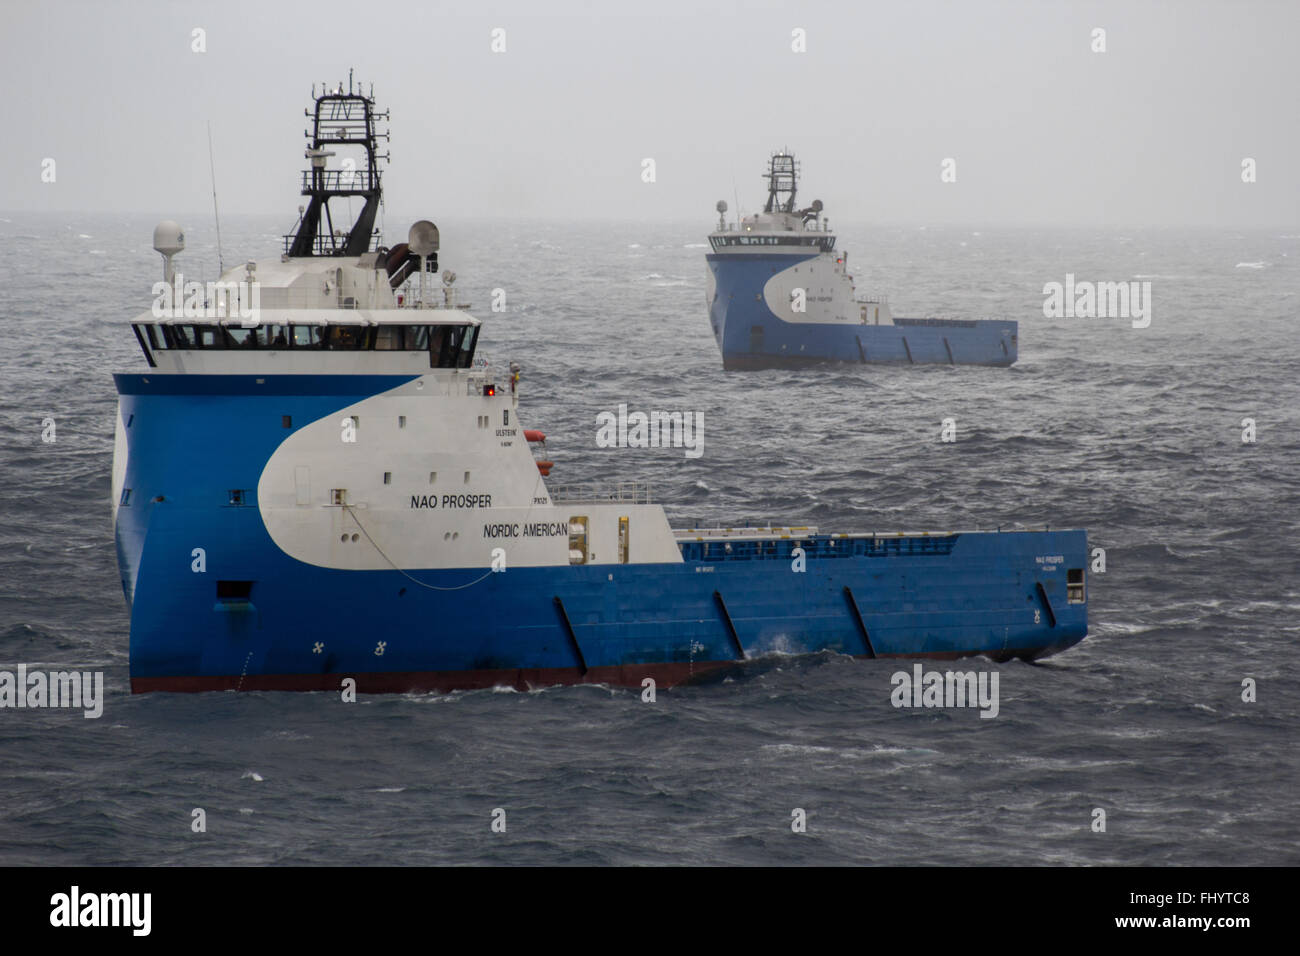 The Nao Prosper and Nao Fighter sailing together in the North Sea - Stock Image